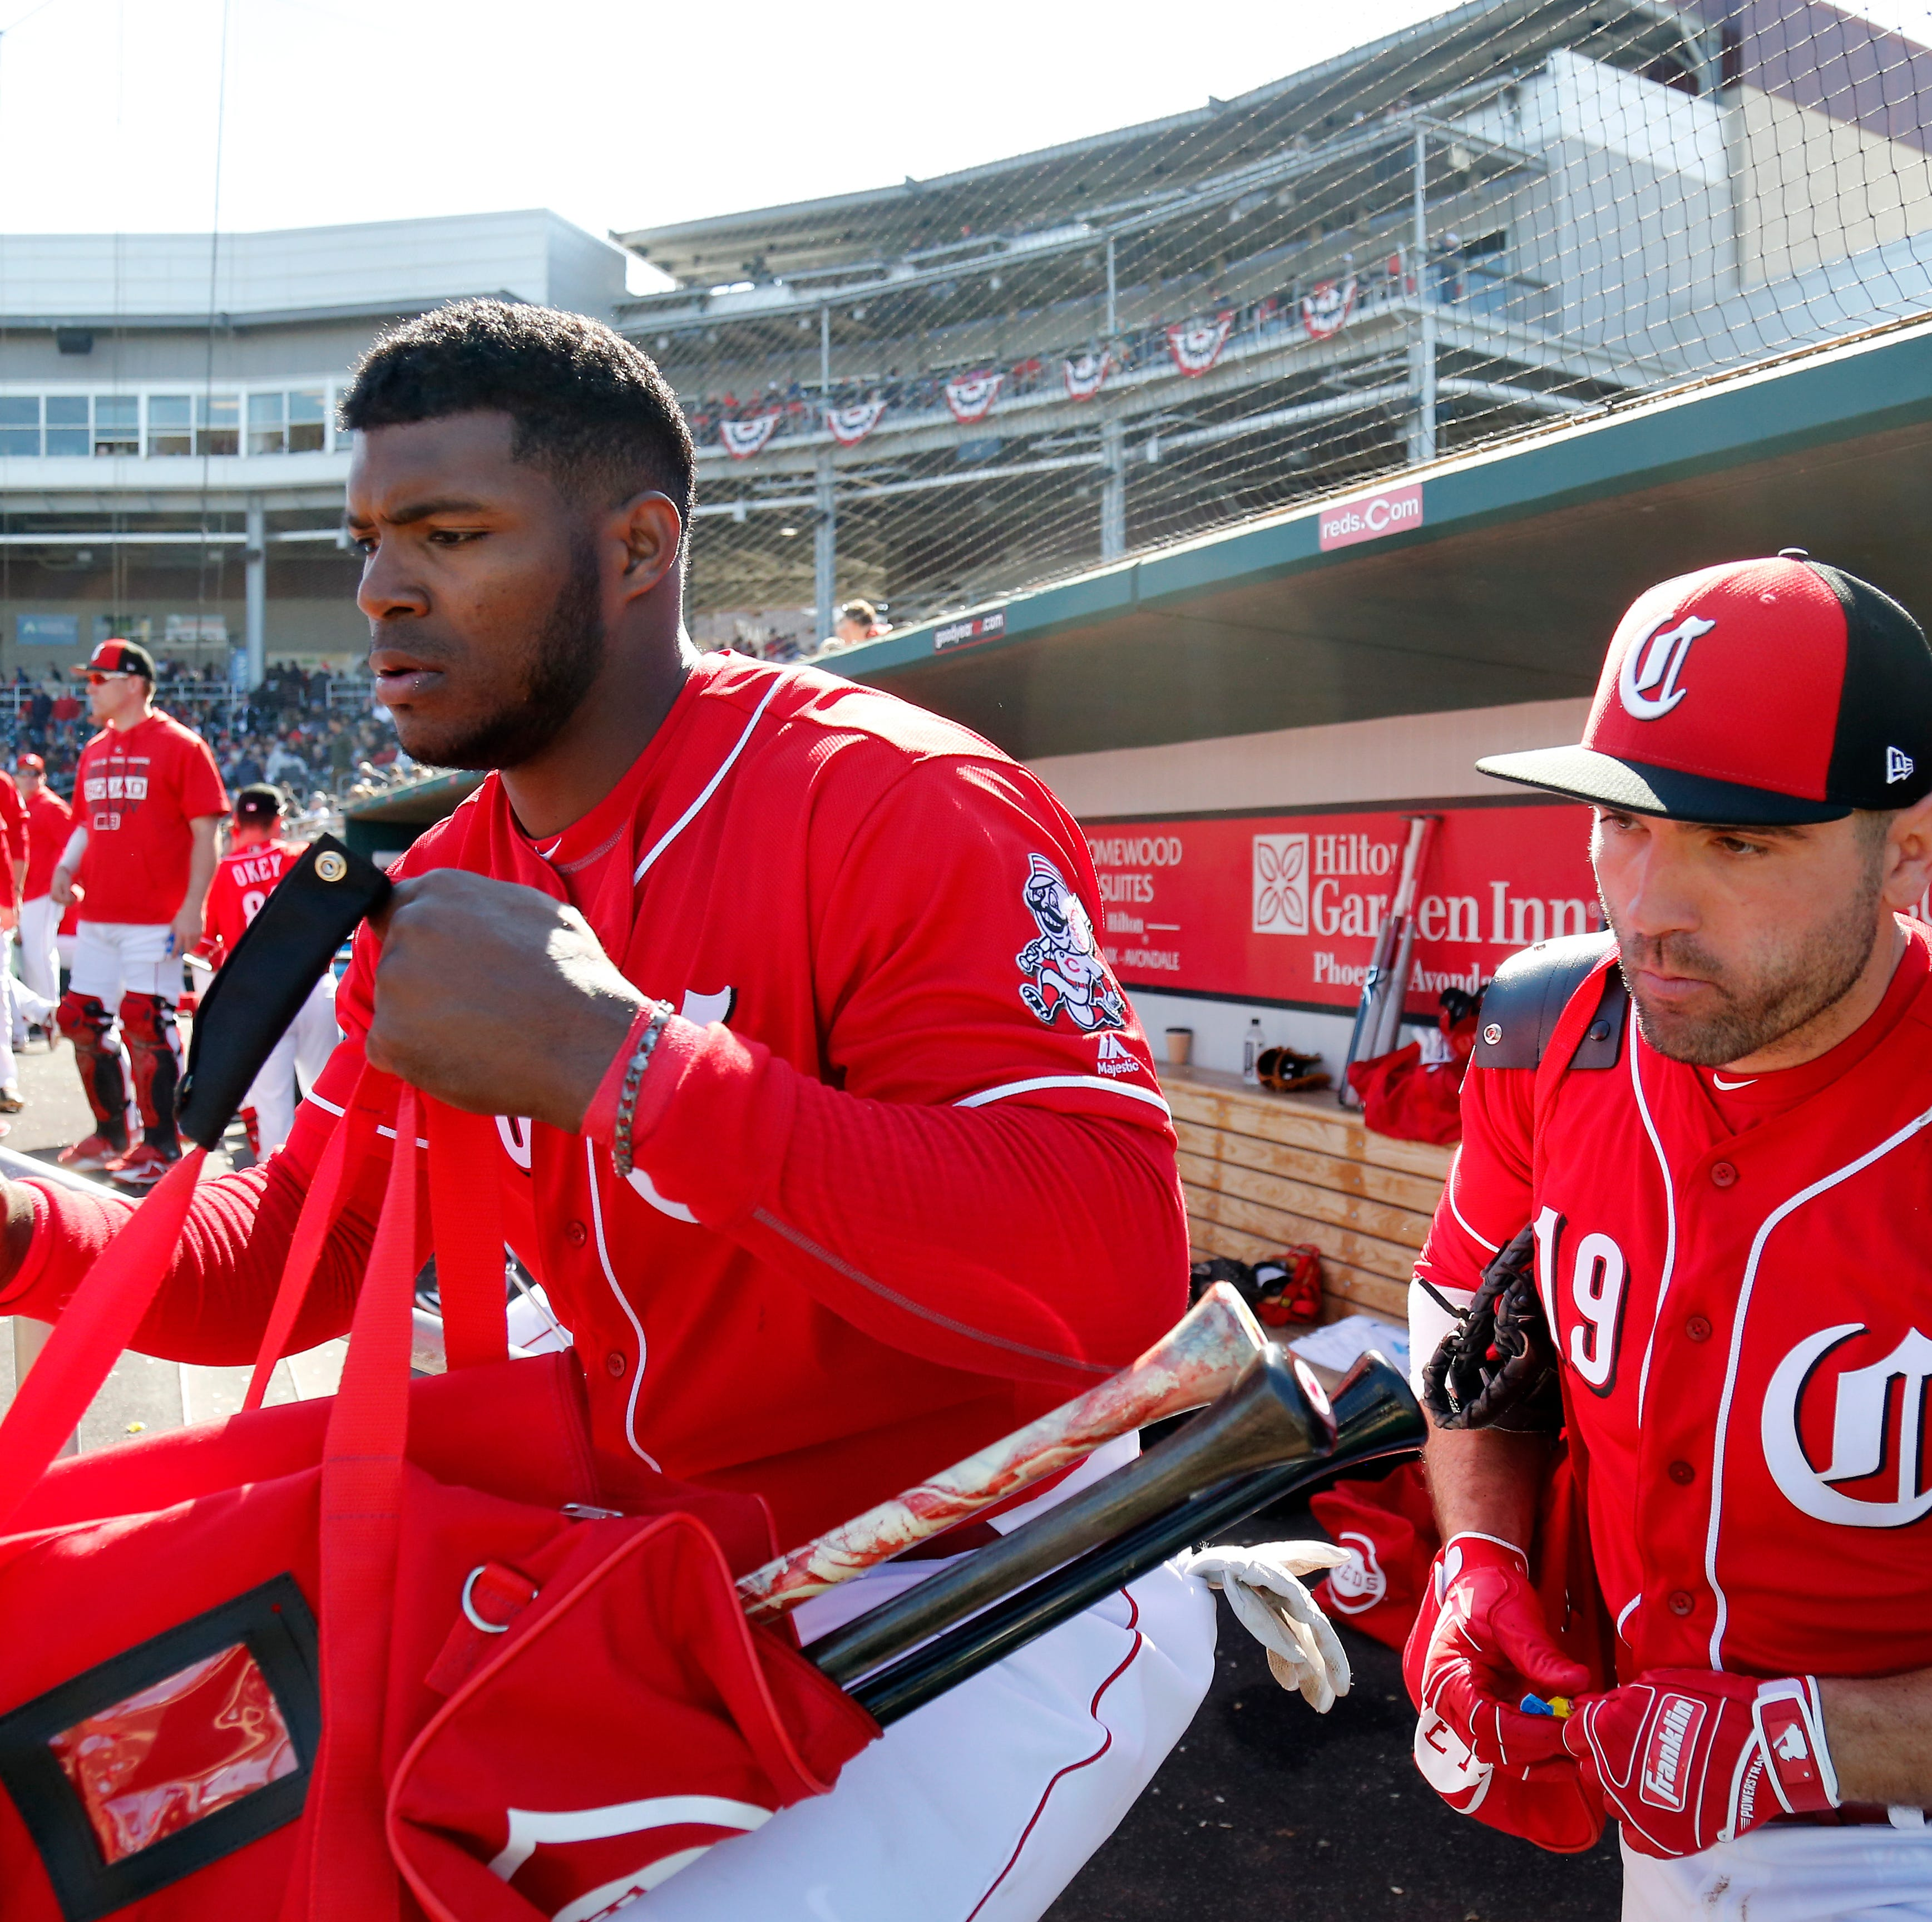 Predictions: Here's how the Cincinnati Reds will do in the 2019 MLB season.